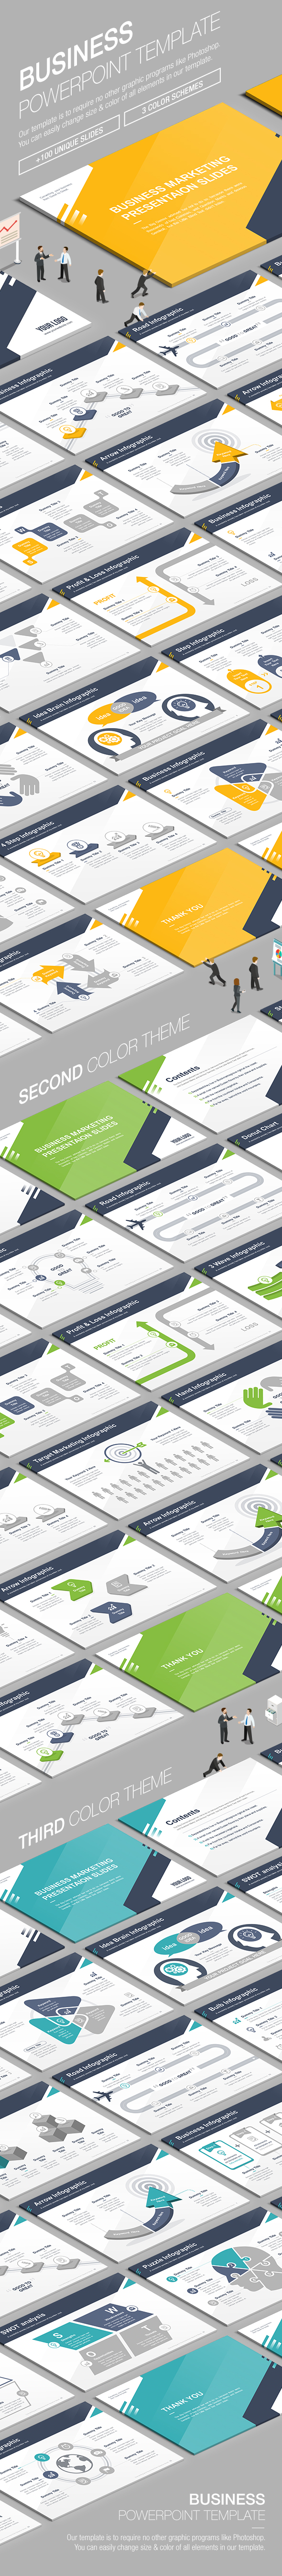 Business Powerpoint Template. Download here: https://graphicriver.net/item/business-powerpoint-template-009/17648253?ref=ksioks